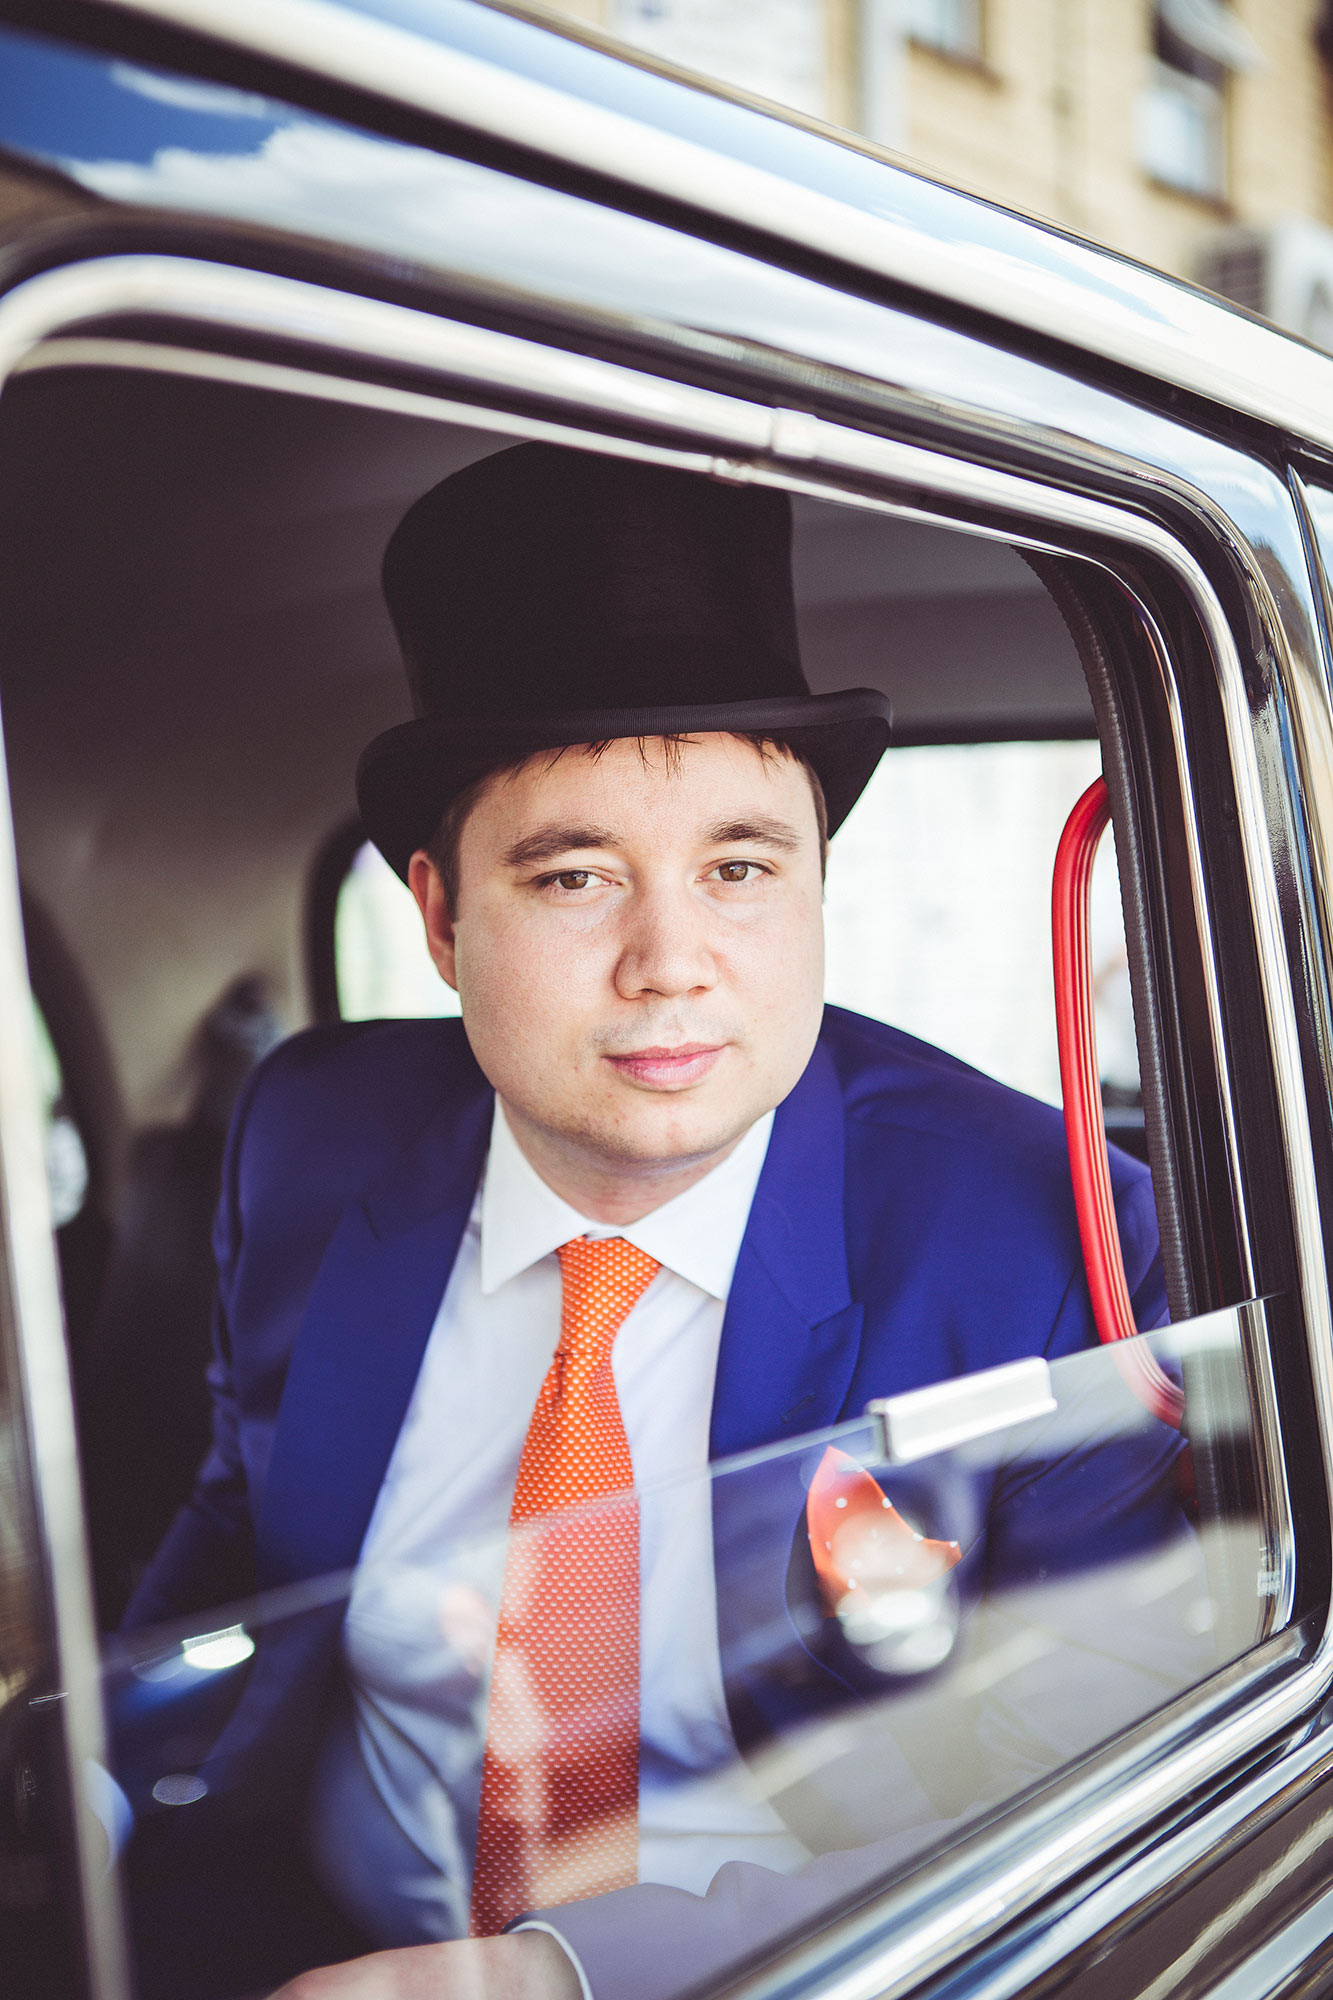 Groom in london taxi wearing a top hat